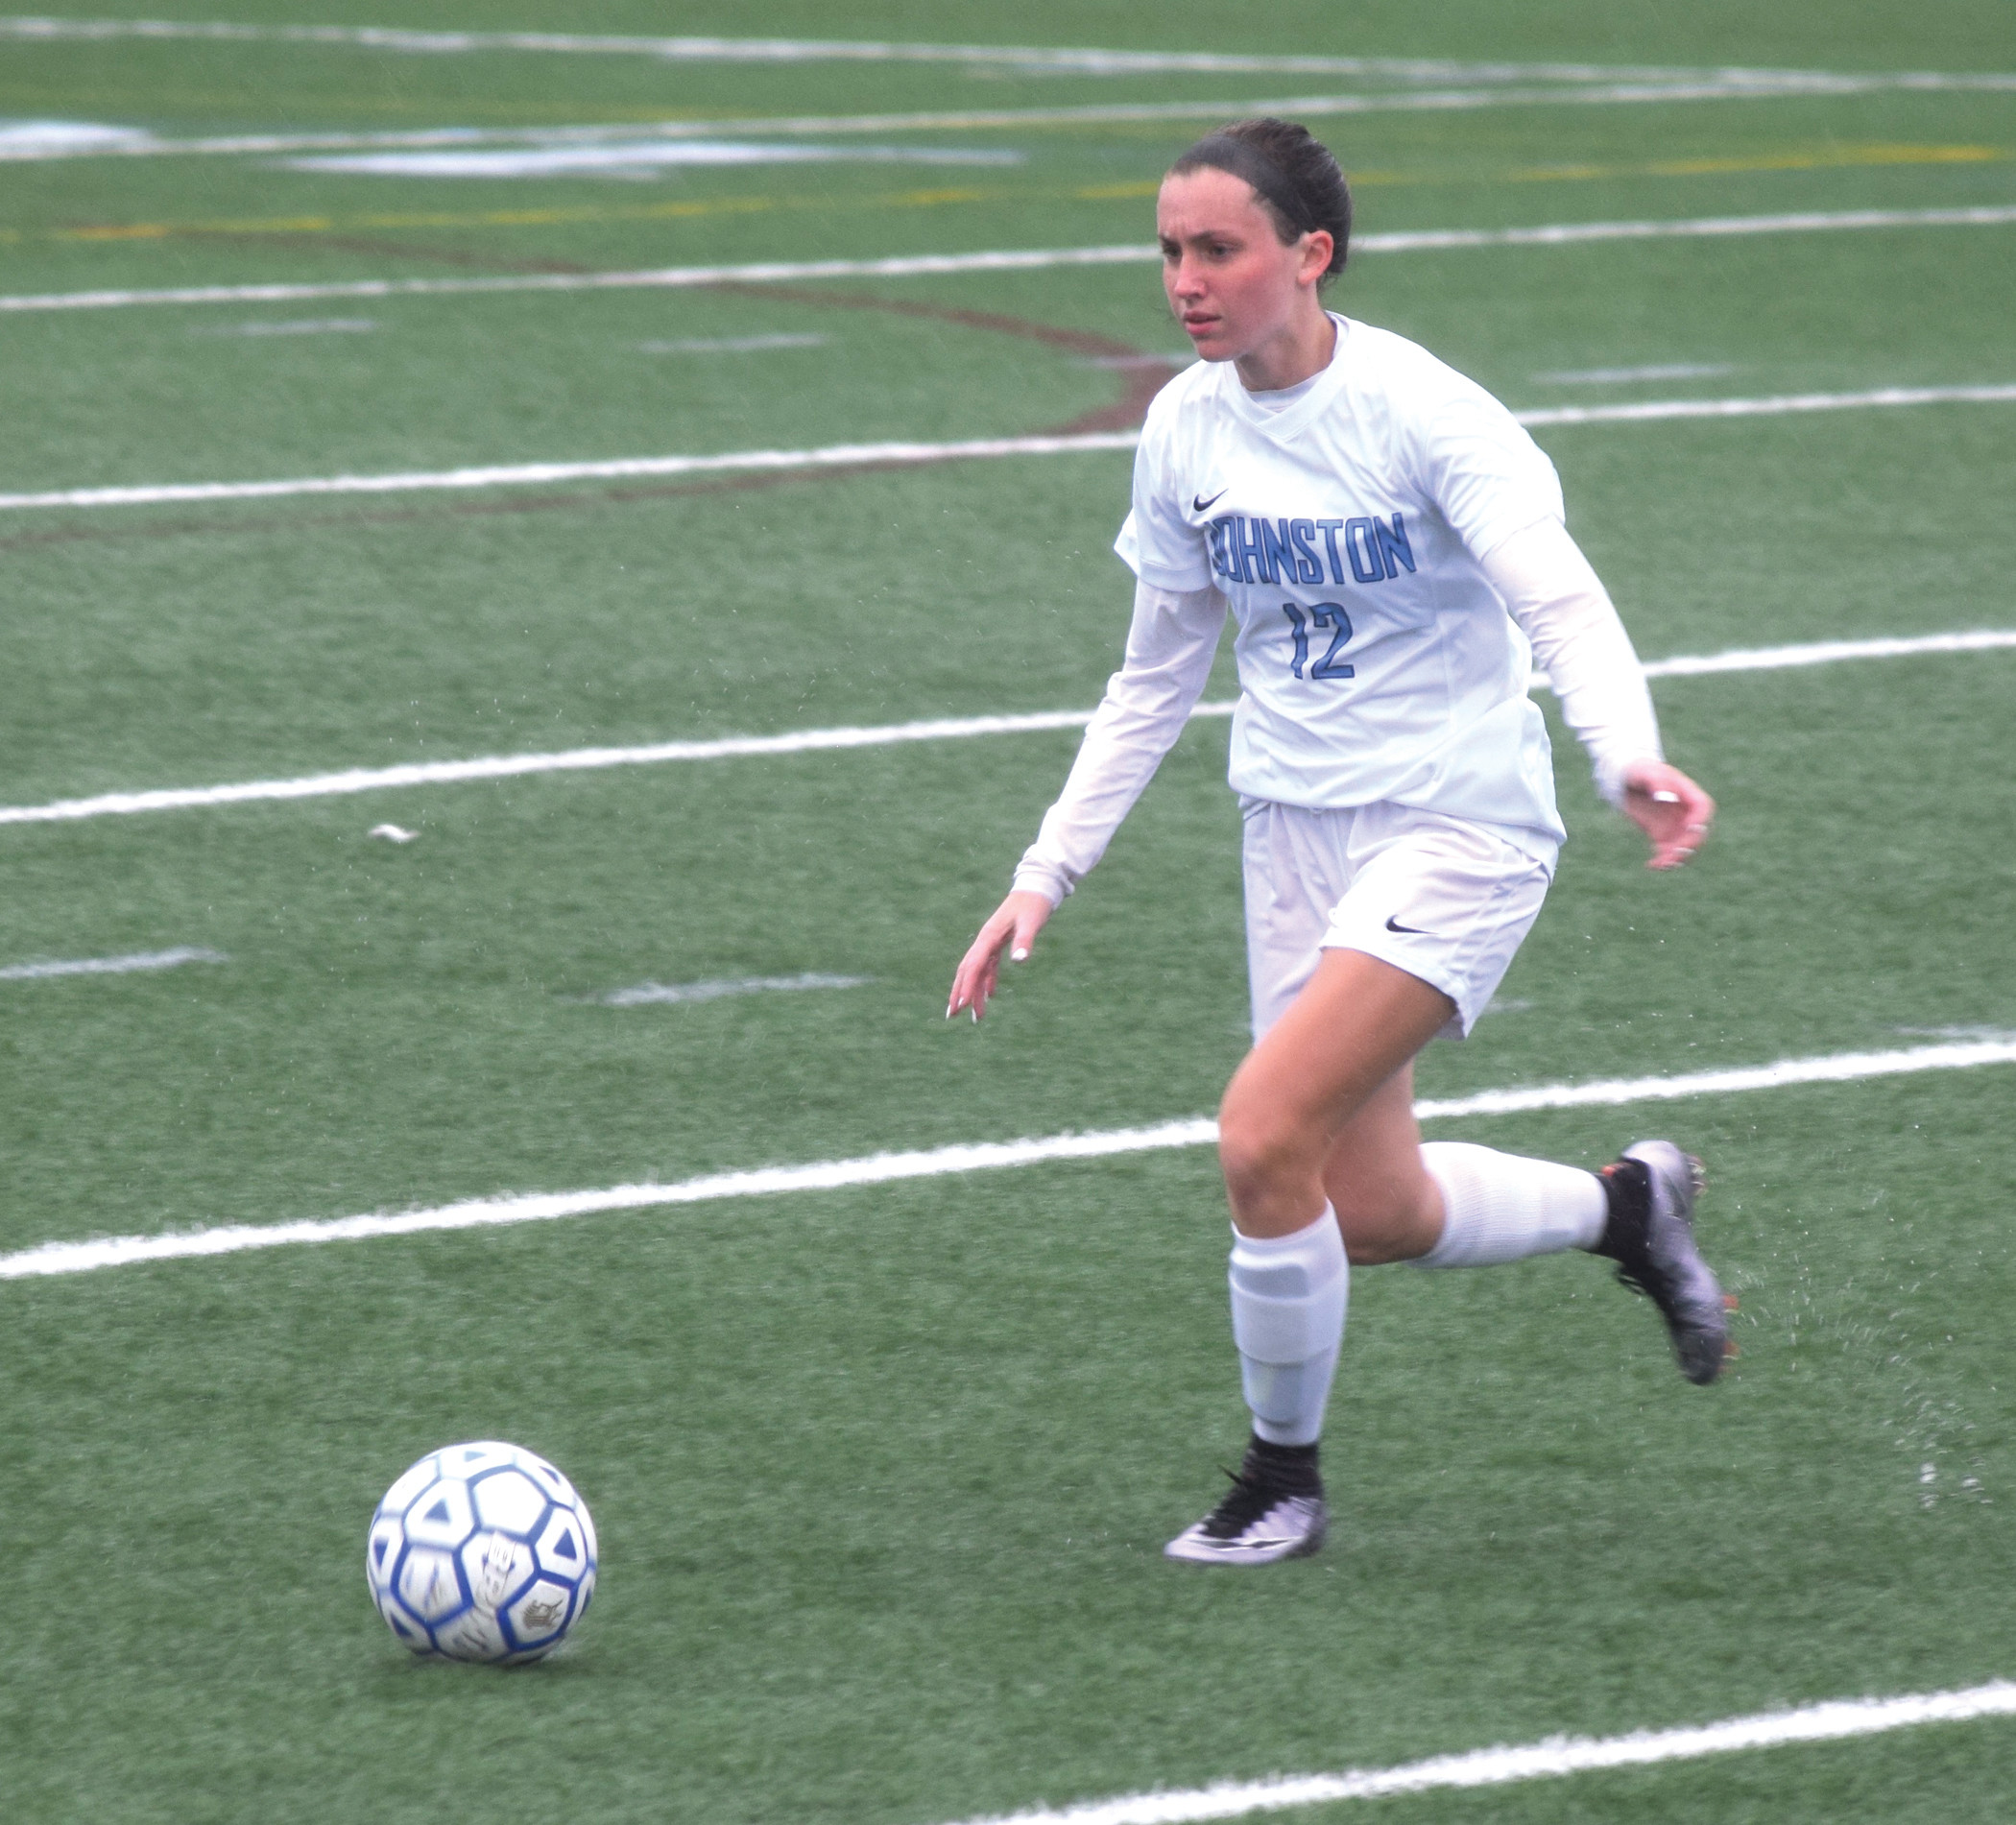 Gabriella Sauro netted a goal for the Panthers in a 10-0 win against PCD.